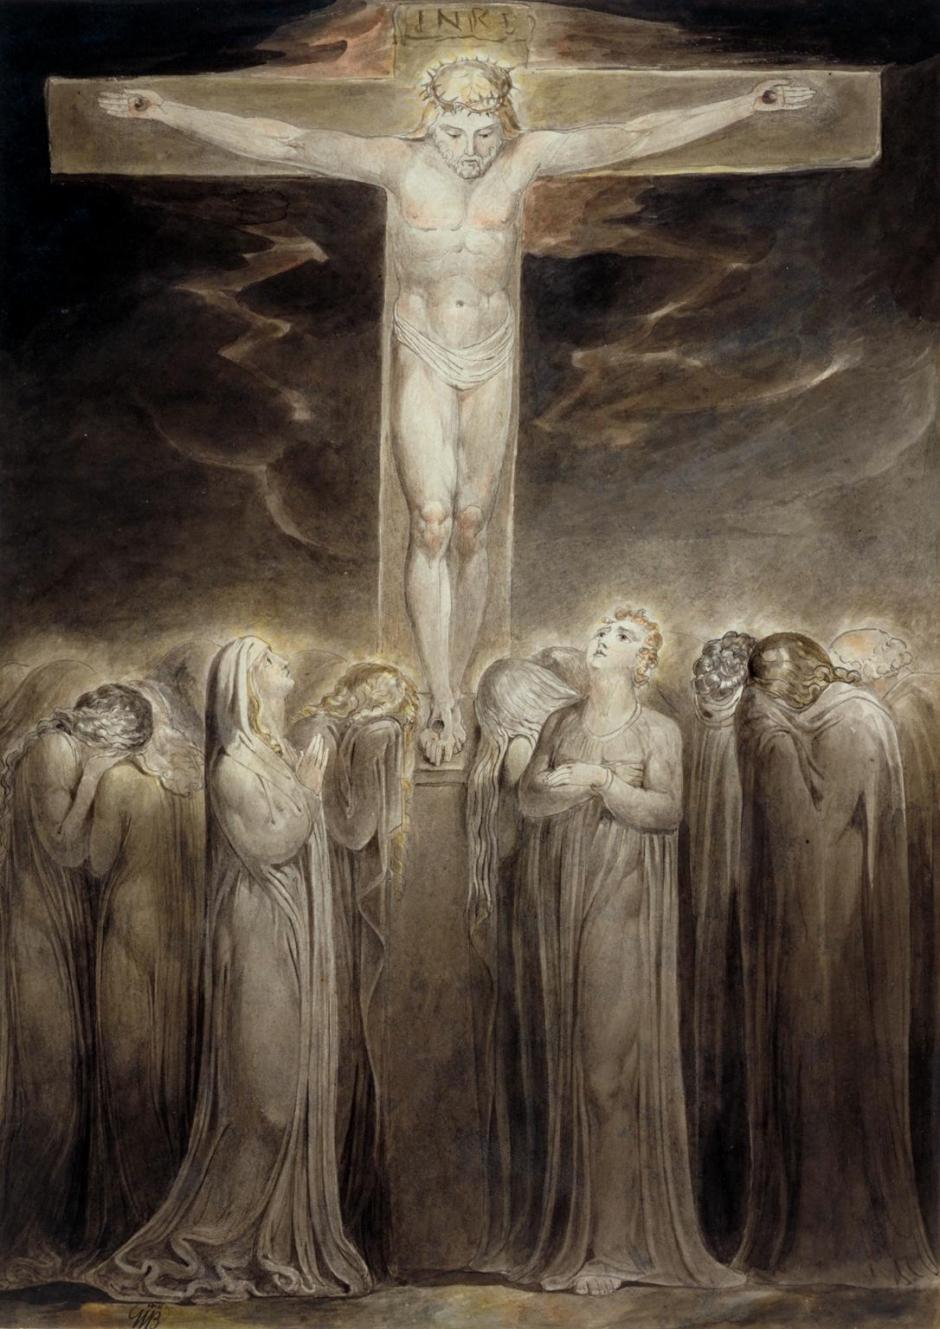 The Crucifixion: 'Behold Thy Mother' c.1805 by William Blake 1757-1827